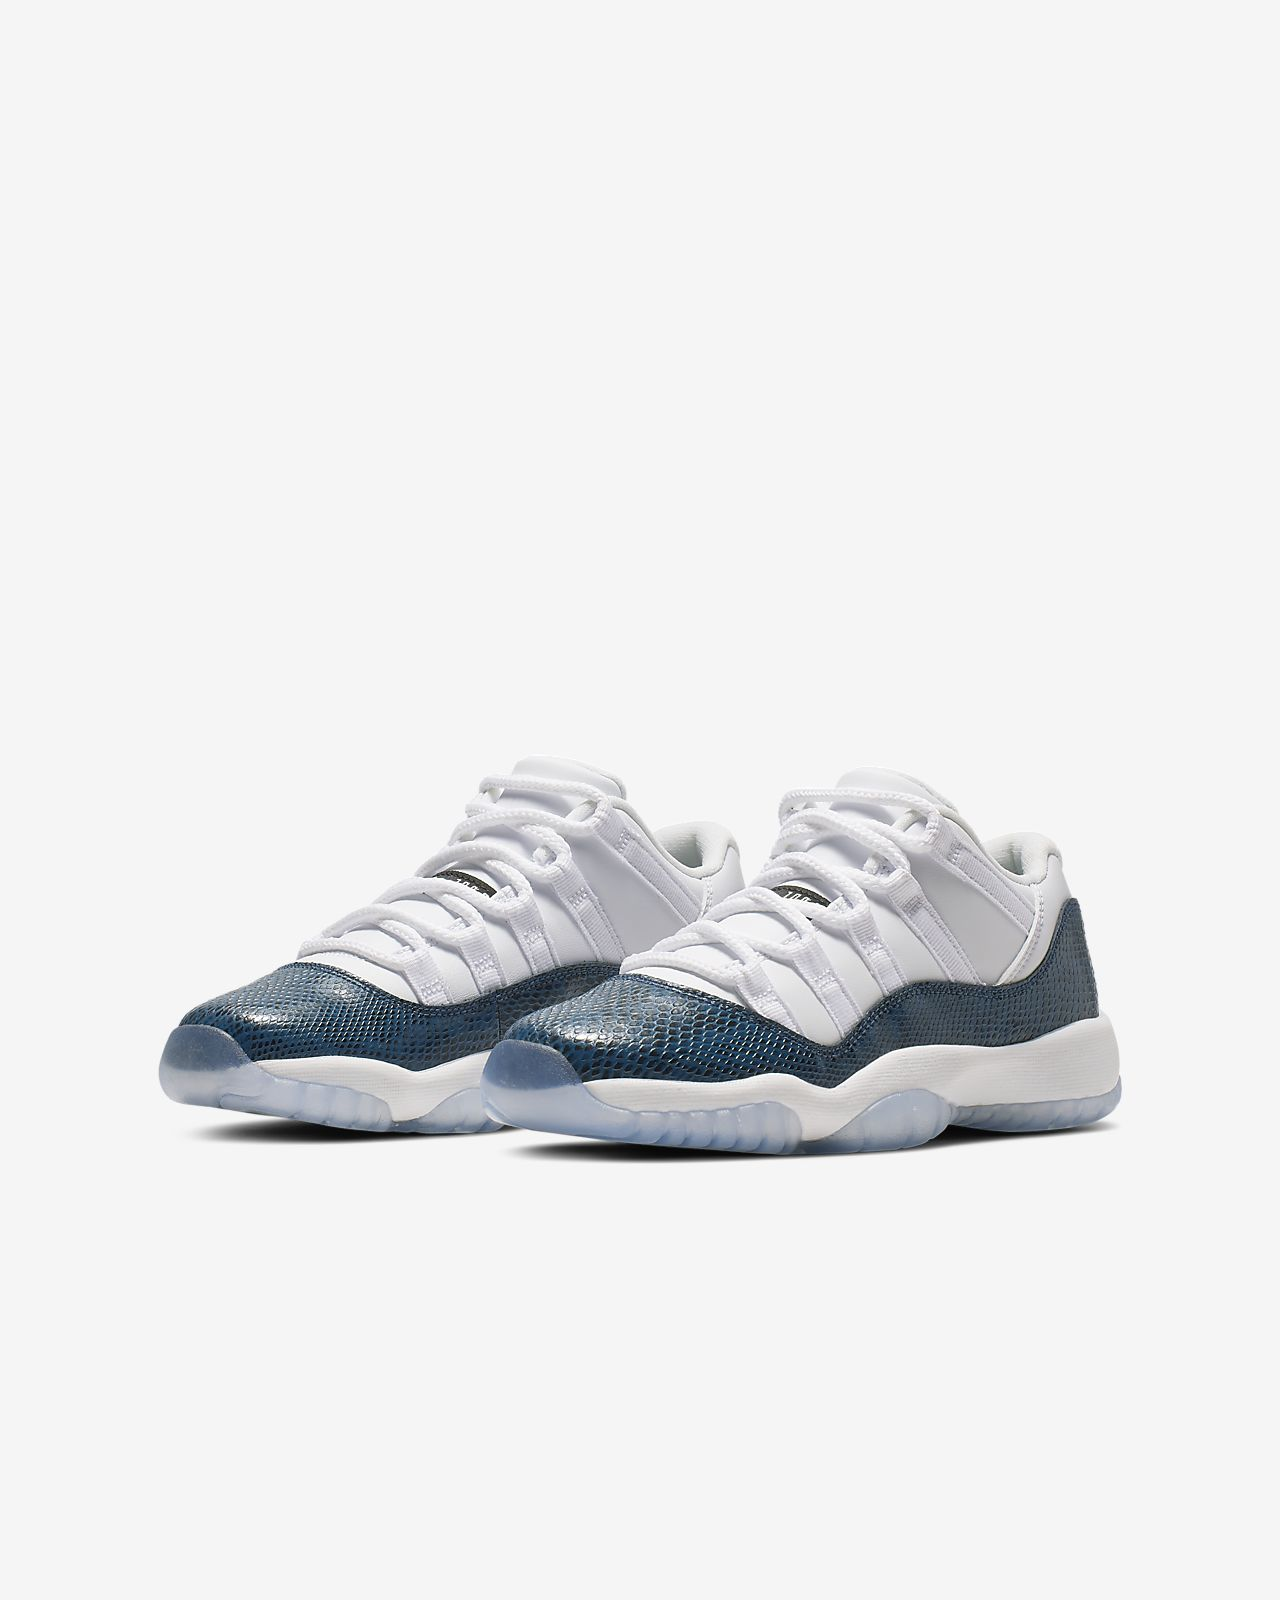 6169a2040be23a Air Jordan 11 Retro Low LE Big Kids  Shoe. Nike.com